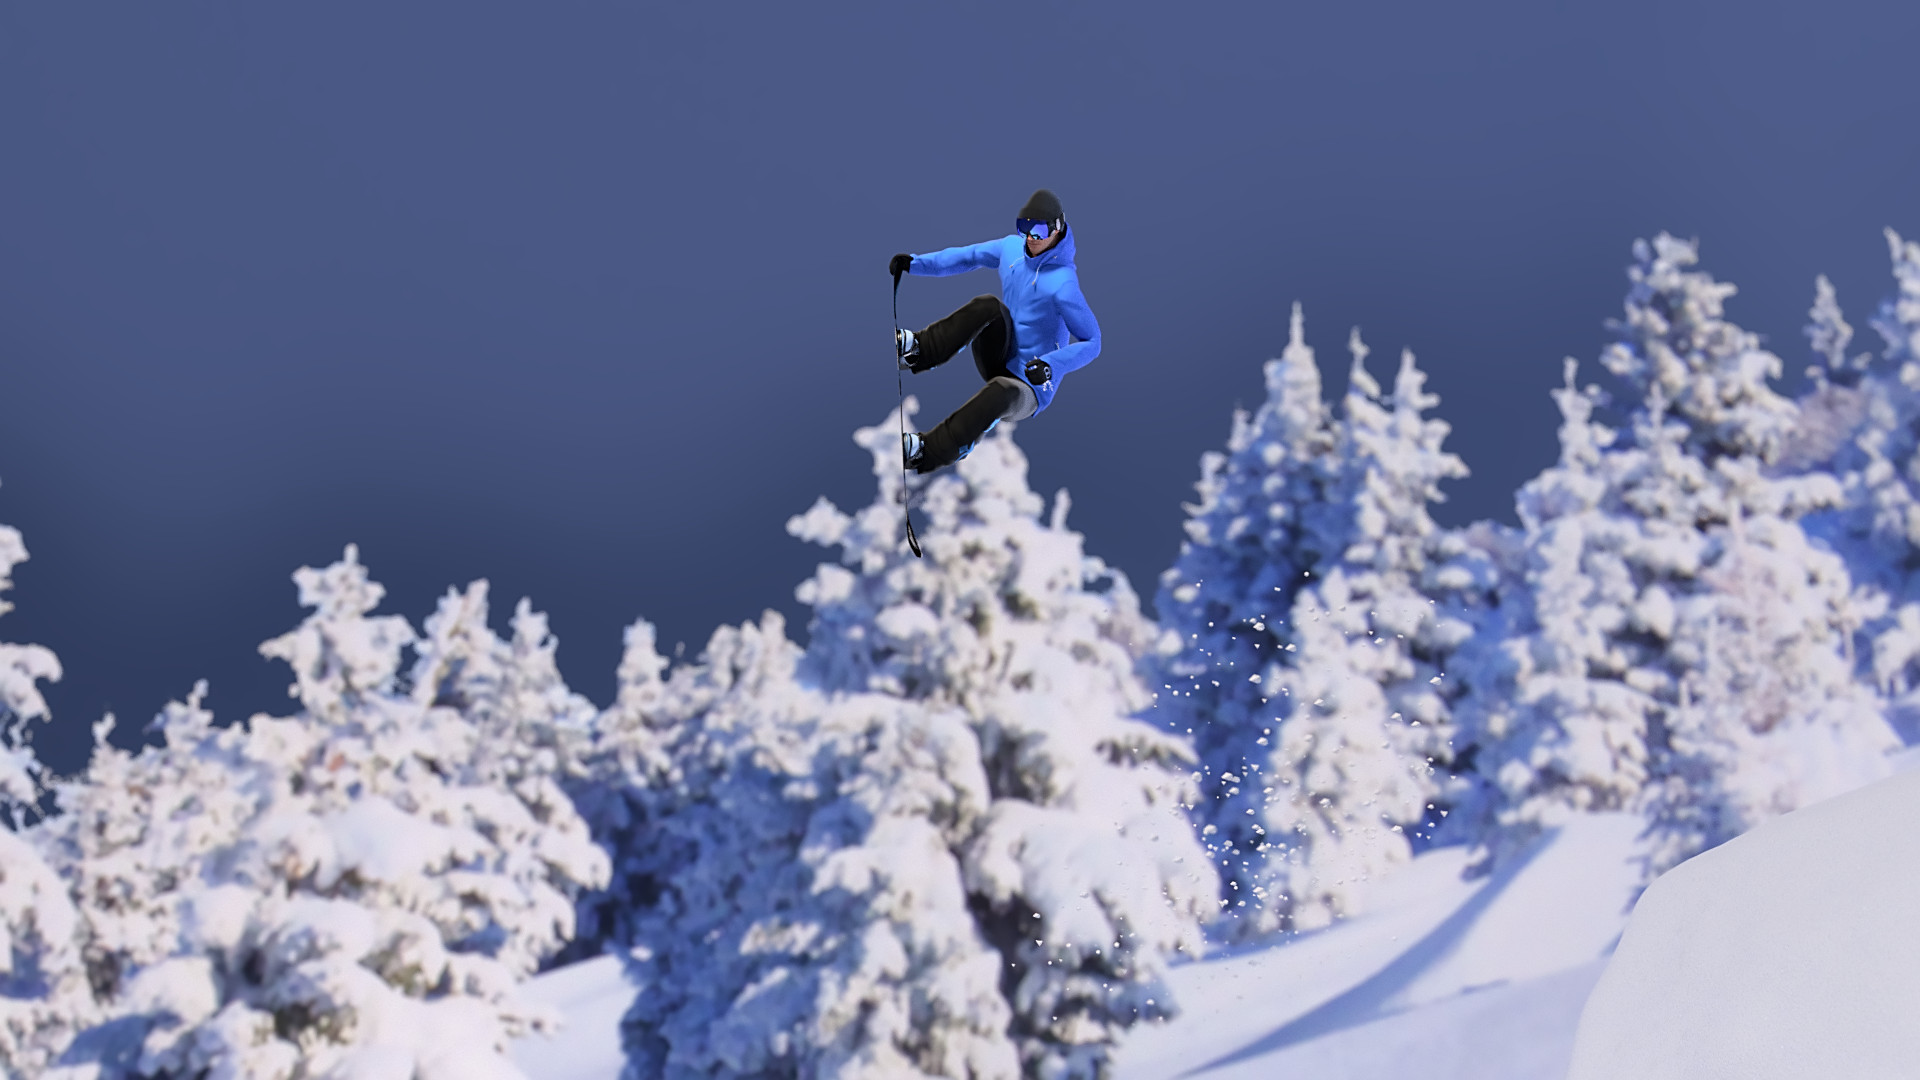 /images/graphisme-3d/personnages/snowboarder/snowboarder_scene2